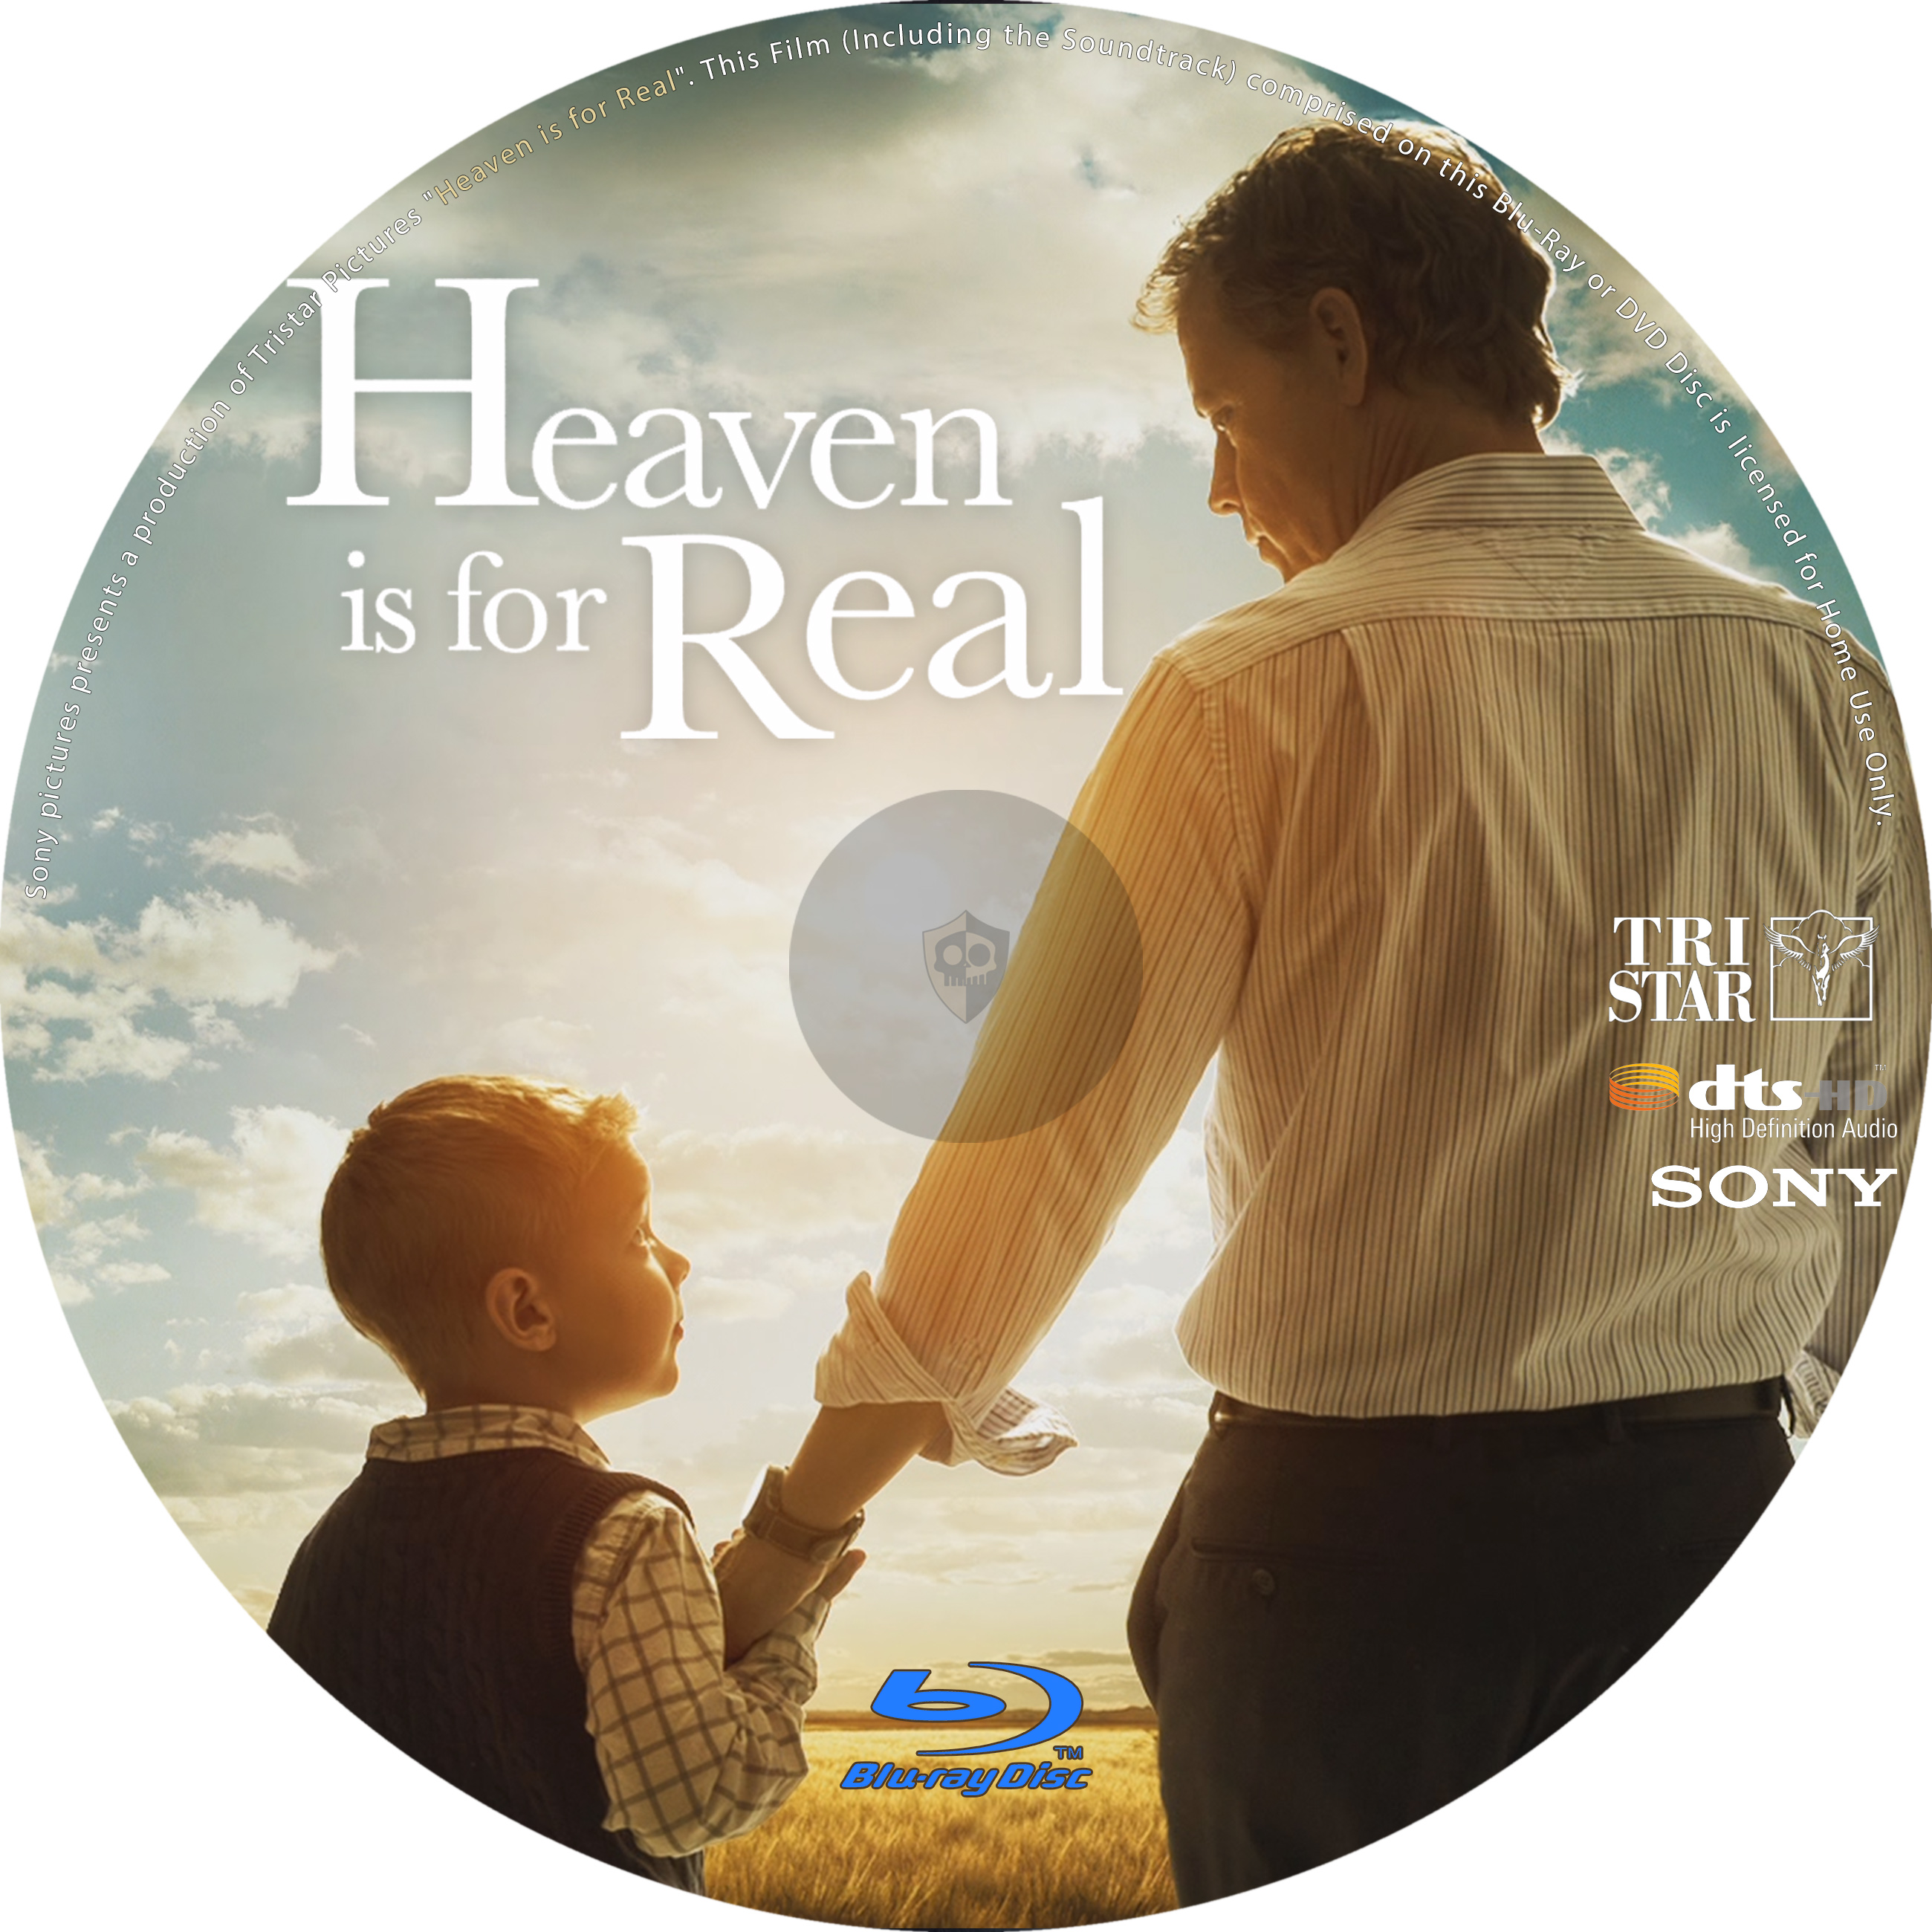 Heaven is for Real But some say the popular movie by this